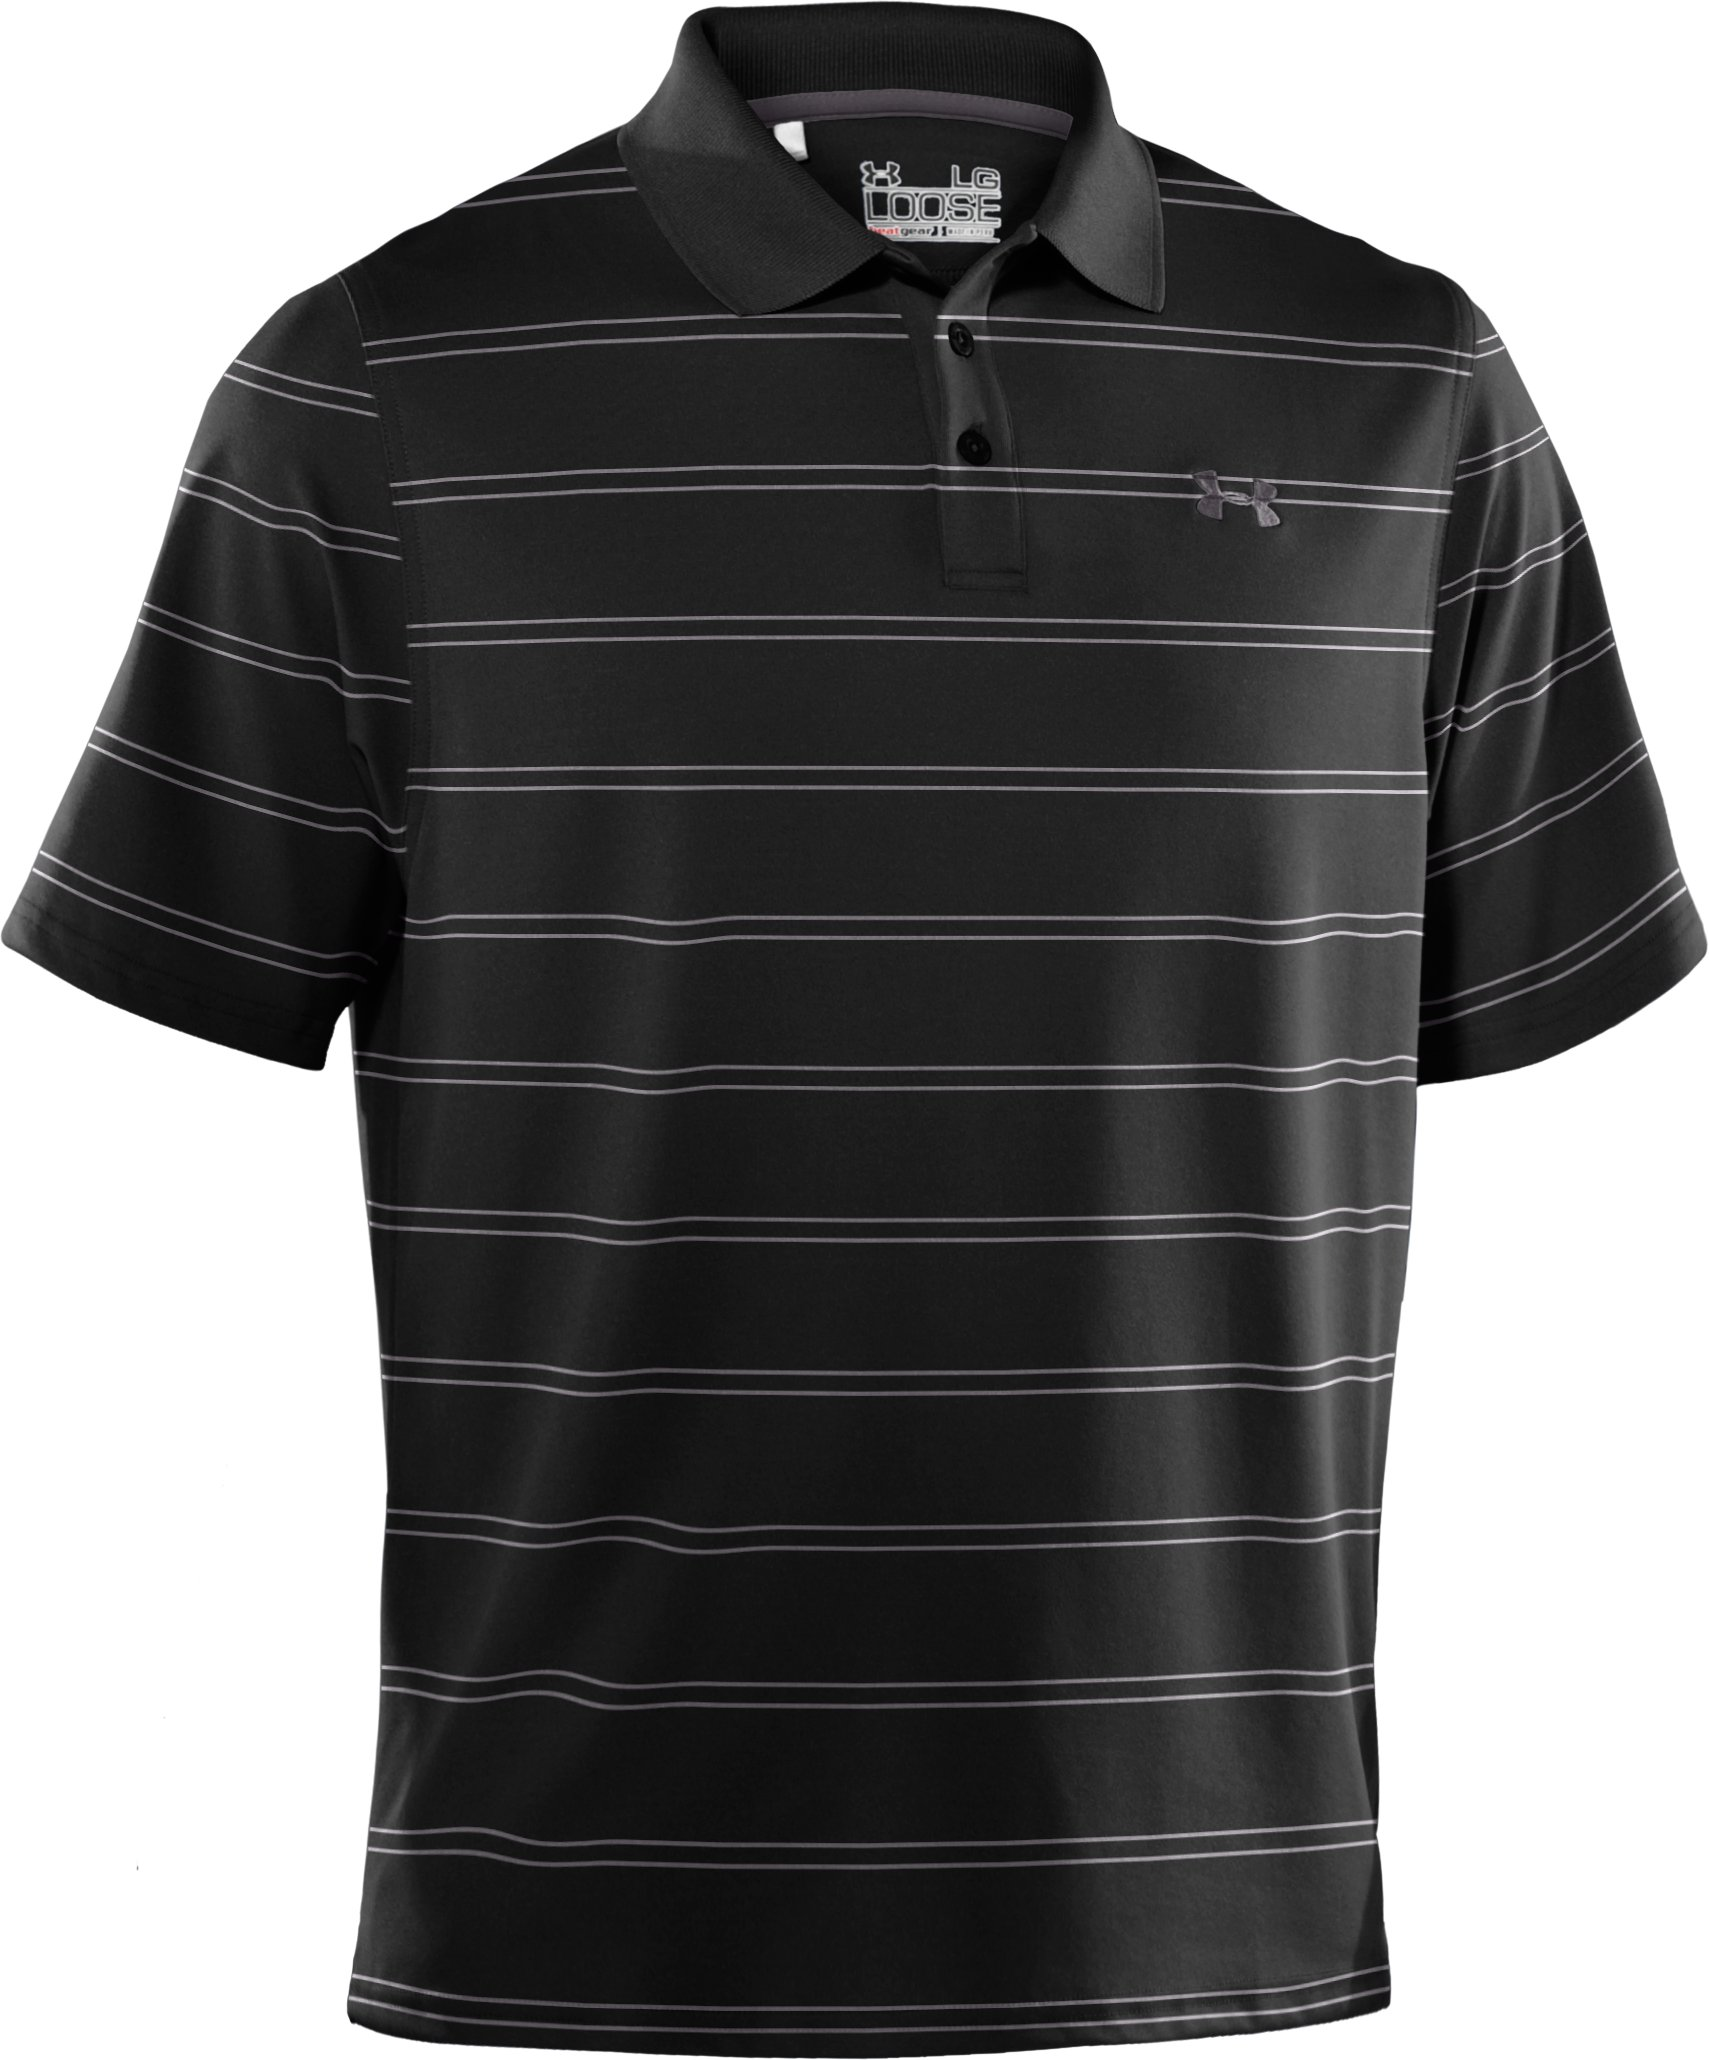 Men's UA Draw Stripe Pique Polo 2.0, Black